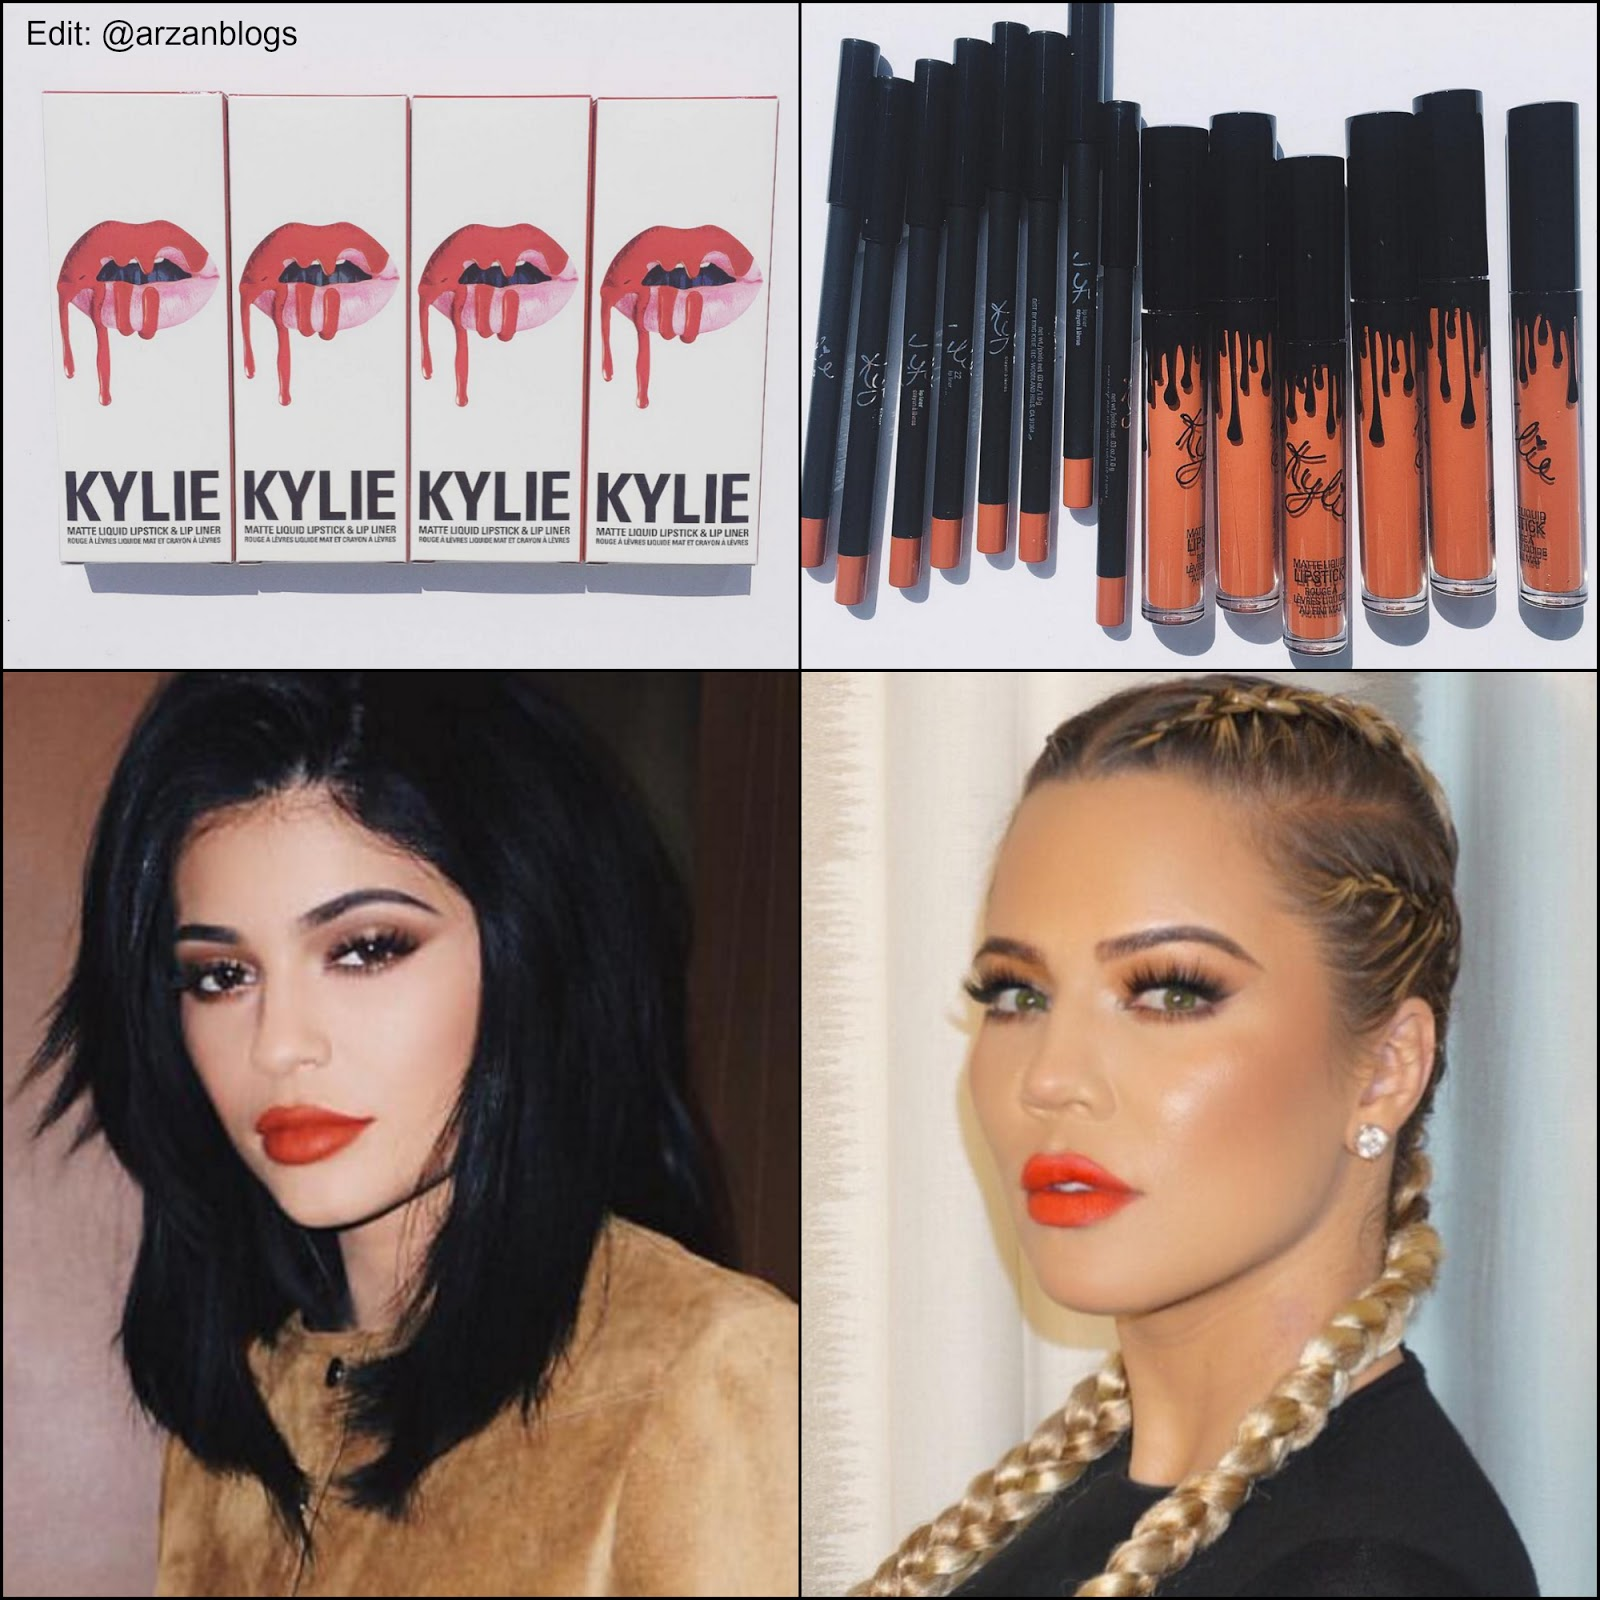 Beauty Kylie Cosmetics Kourt K Launch Matte Liquid Marry Jo Also Check Out My Colourpop Dupes Video And Im Giving Away A Lip Kit Of Choice Candy Or Giveaway Ends On July 31st 2016 At 1159 Pm